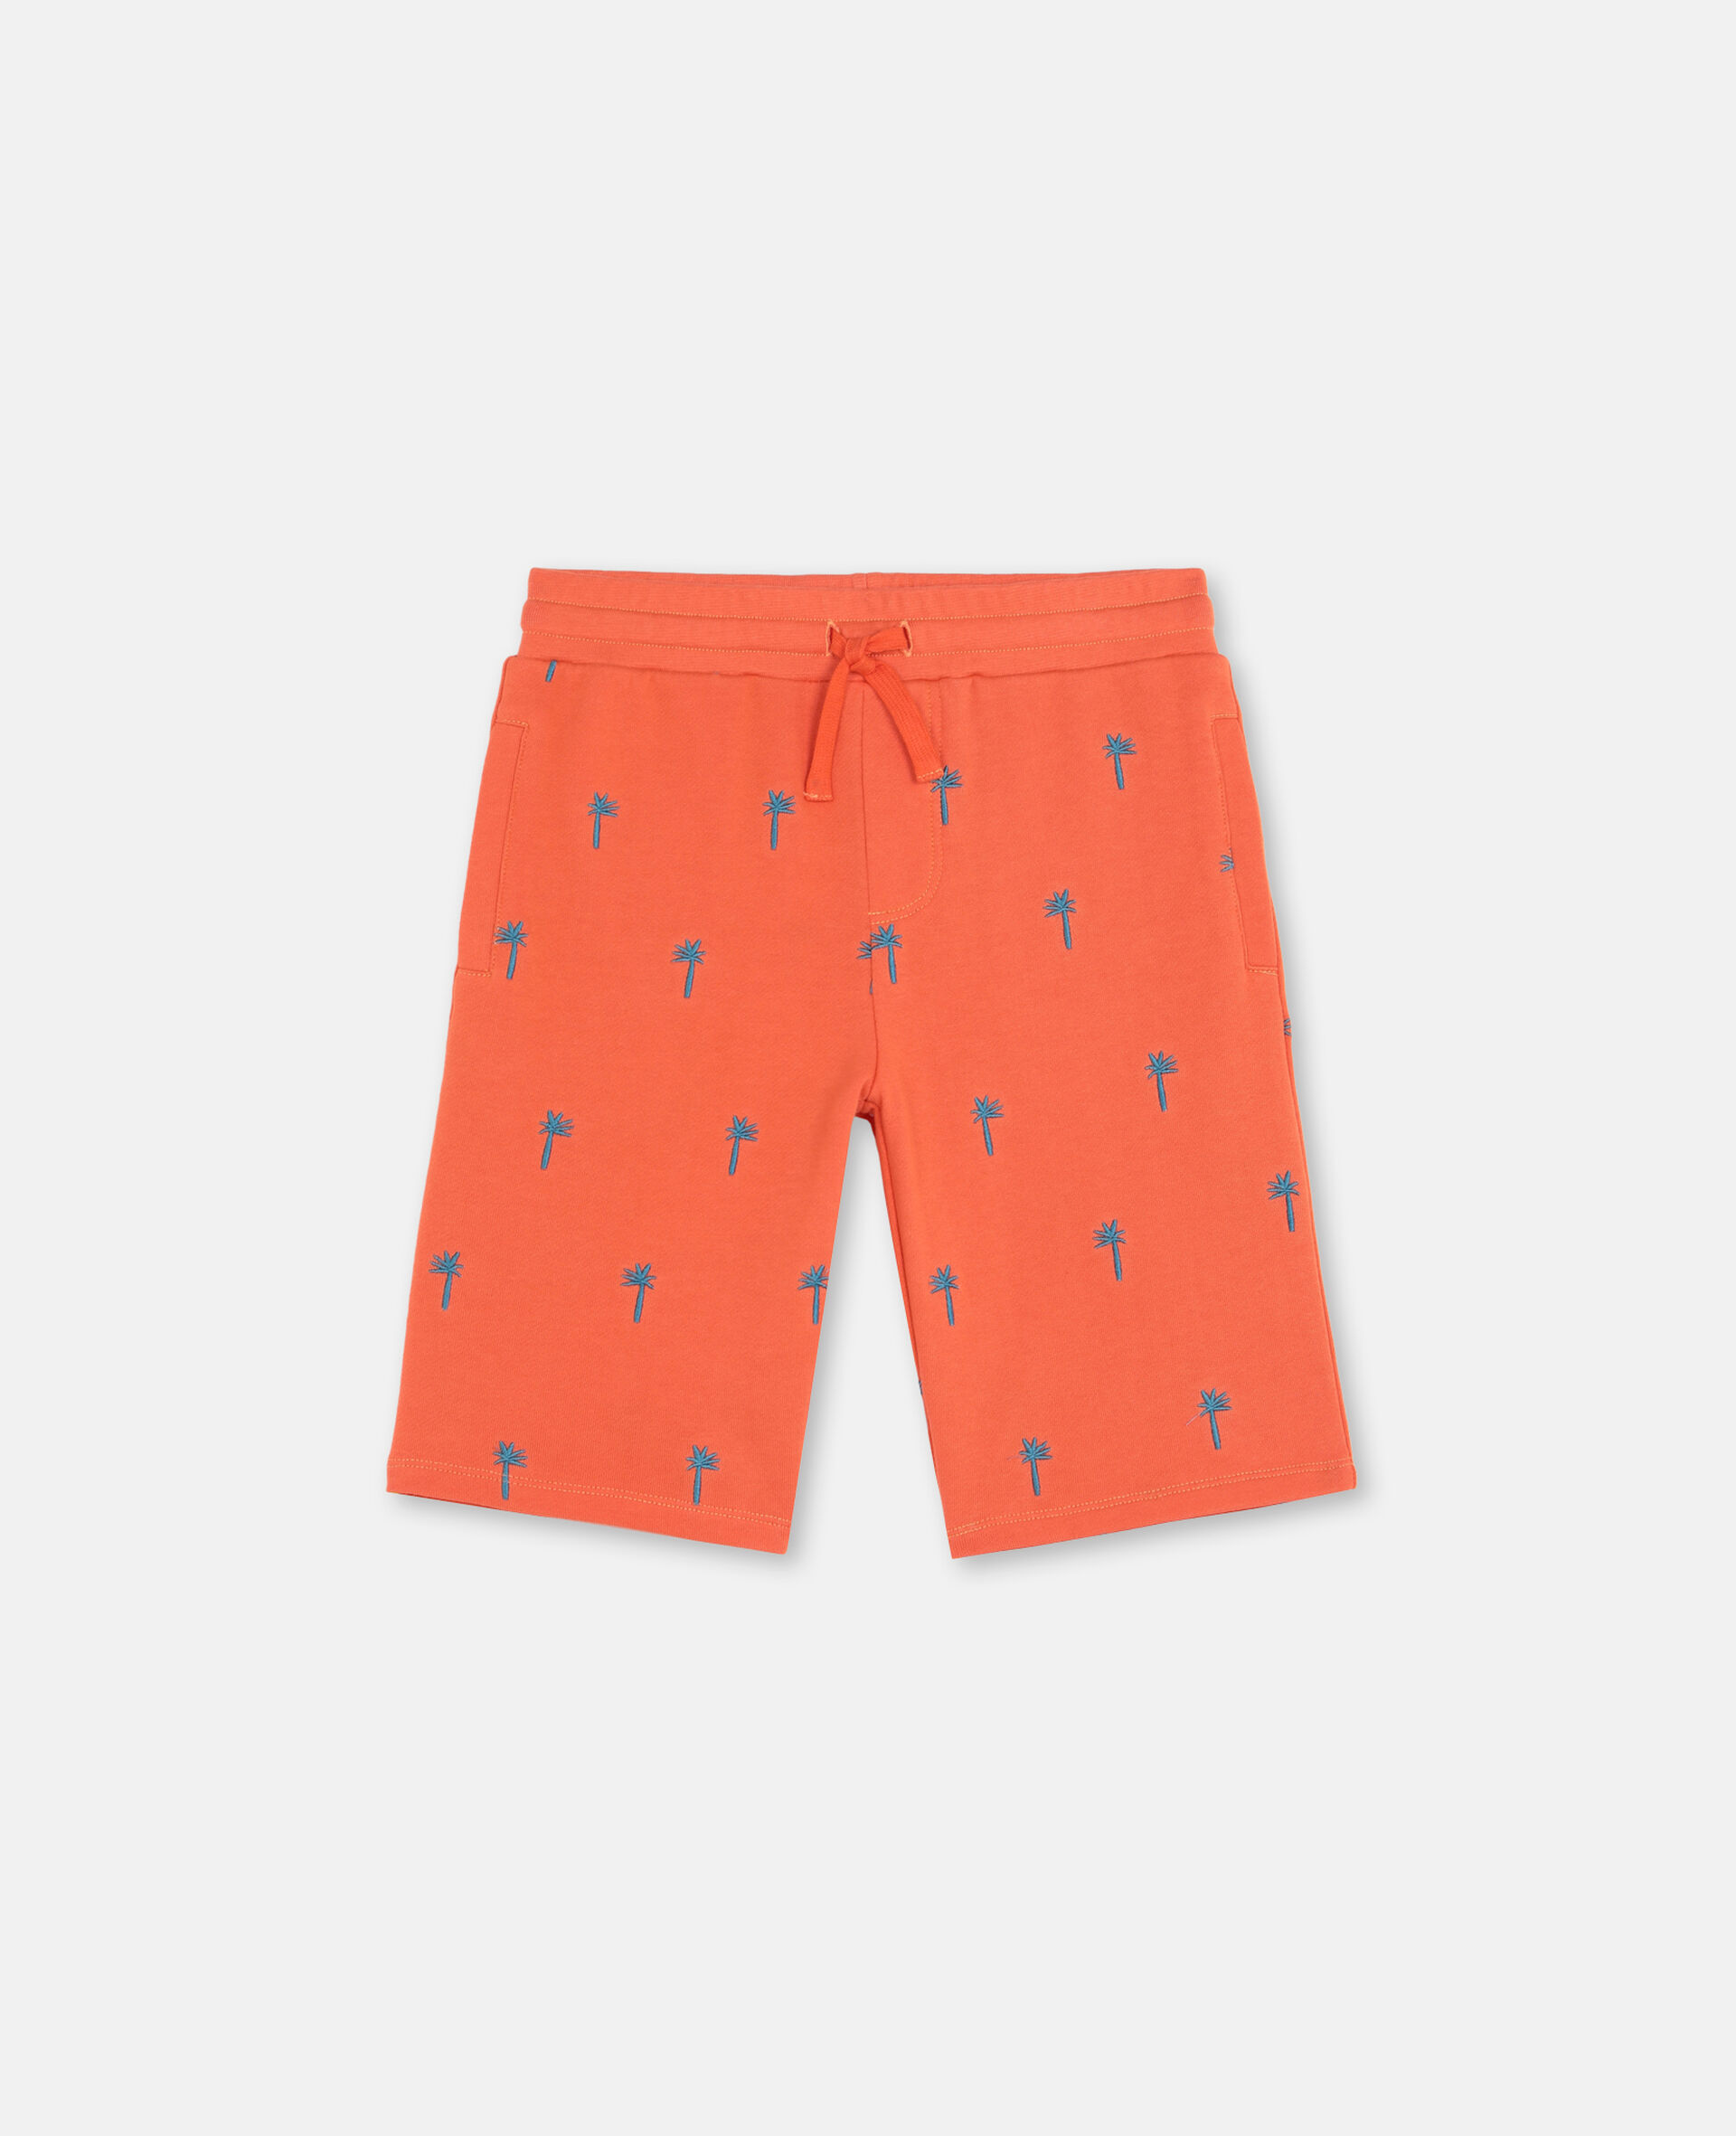 Embroidered Palm Cotton Shorts-Red-large image number 0